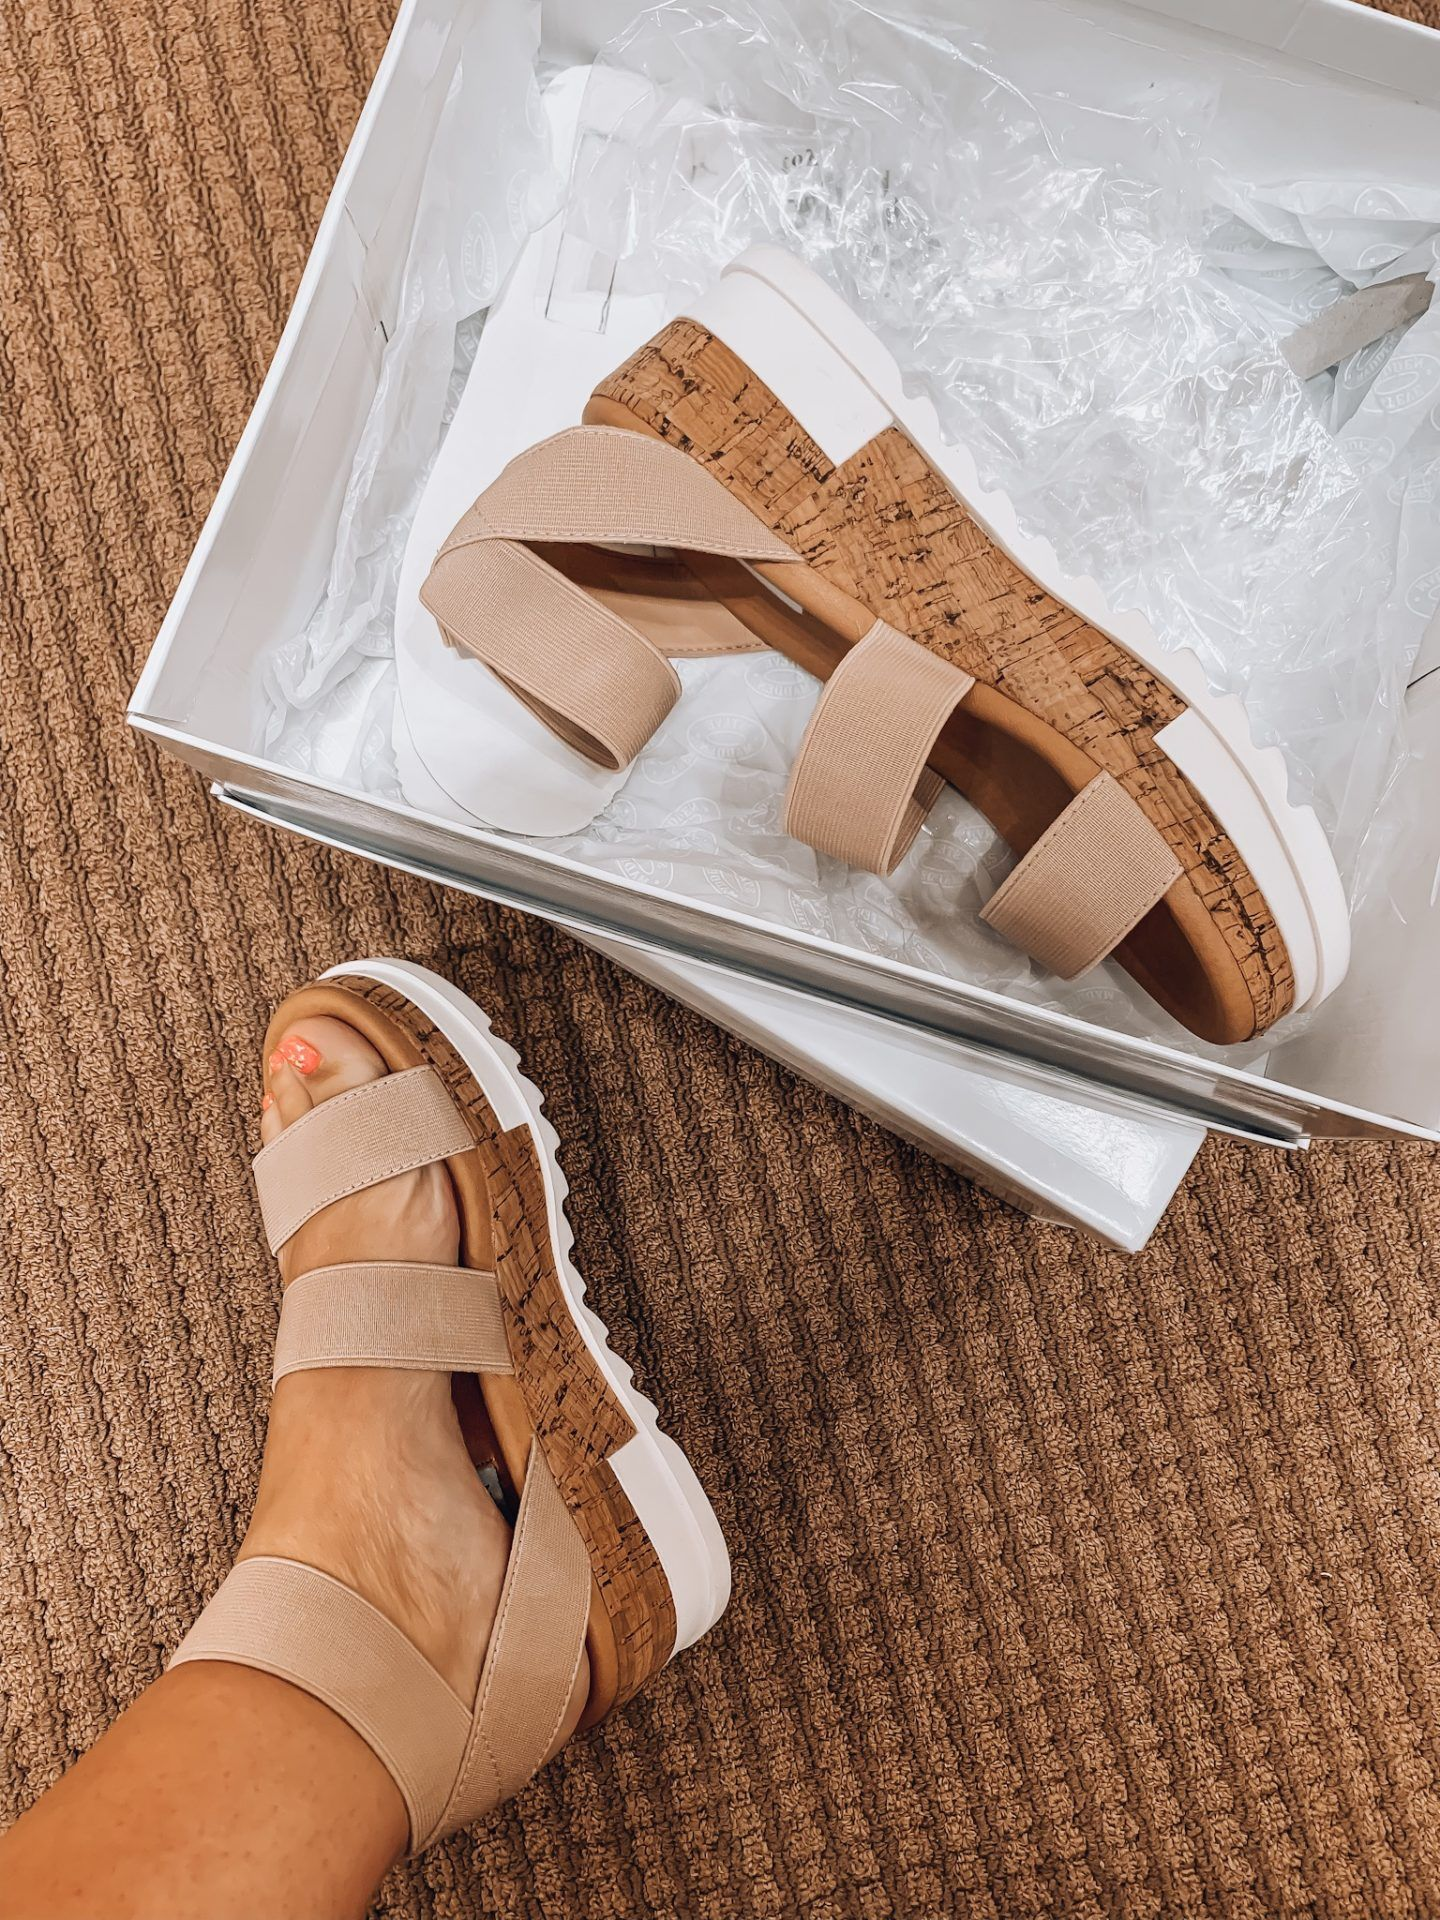 Steve Madden   The Shoe of Summer is part of Shoes -